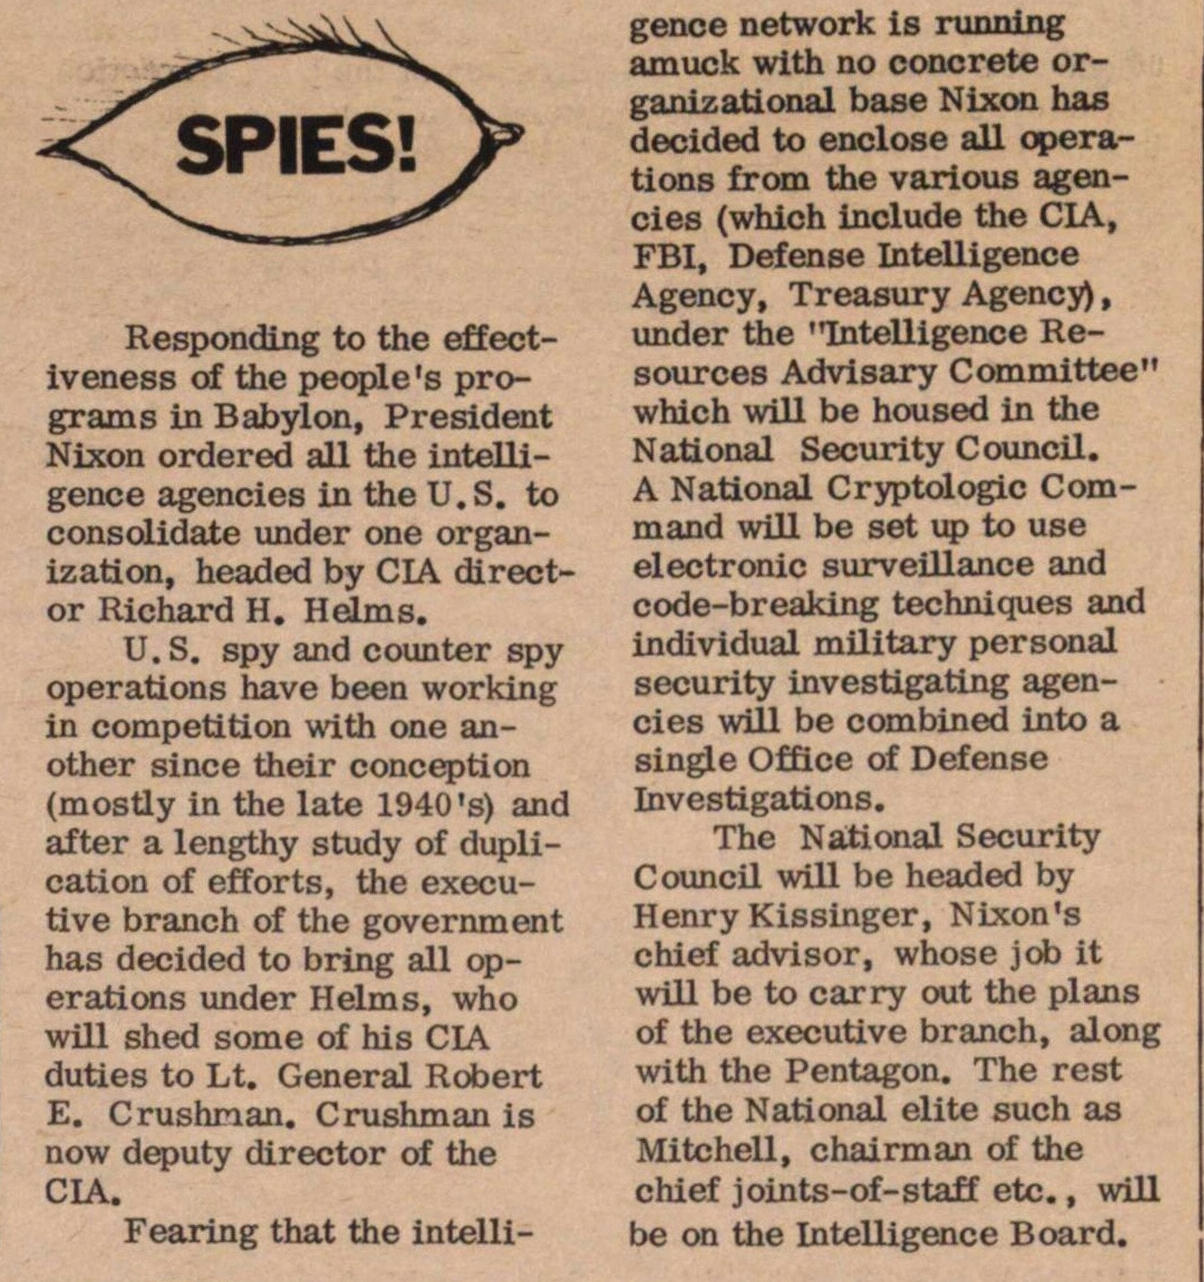 Spies! image